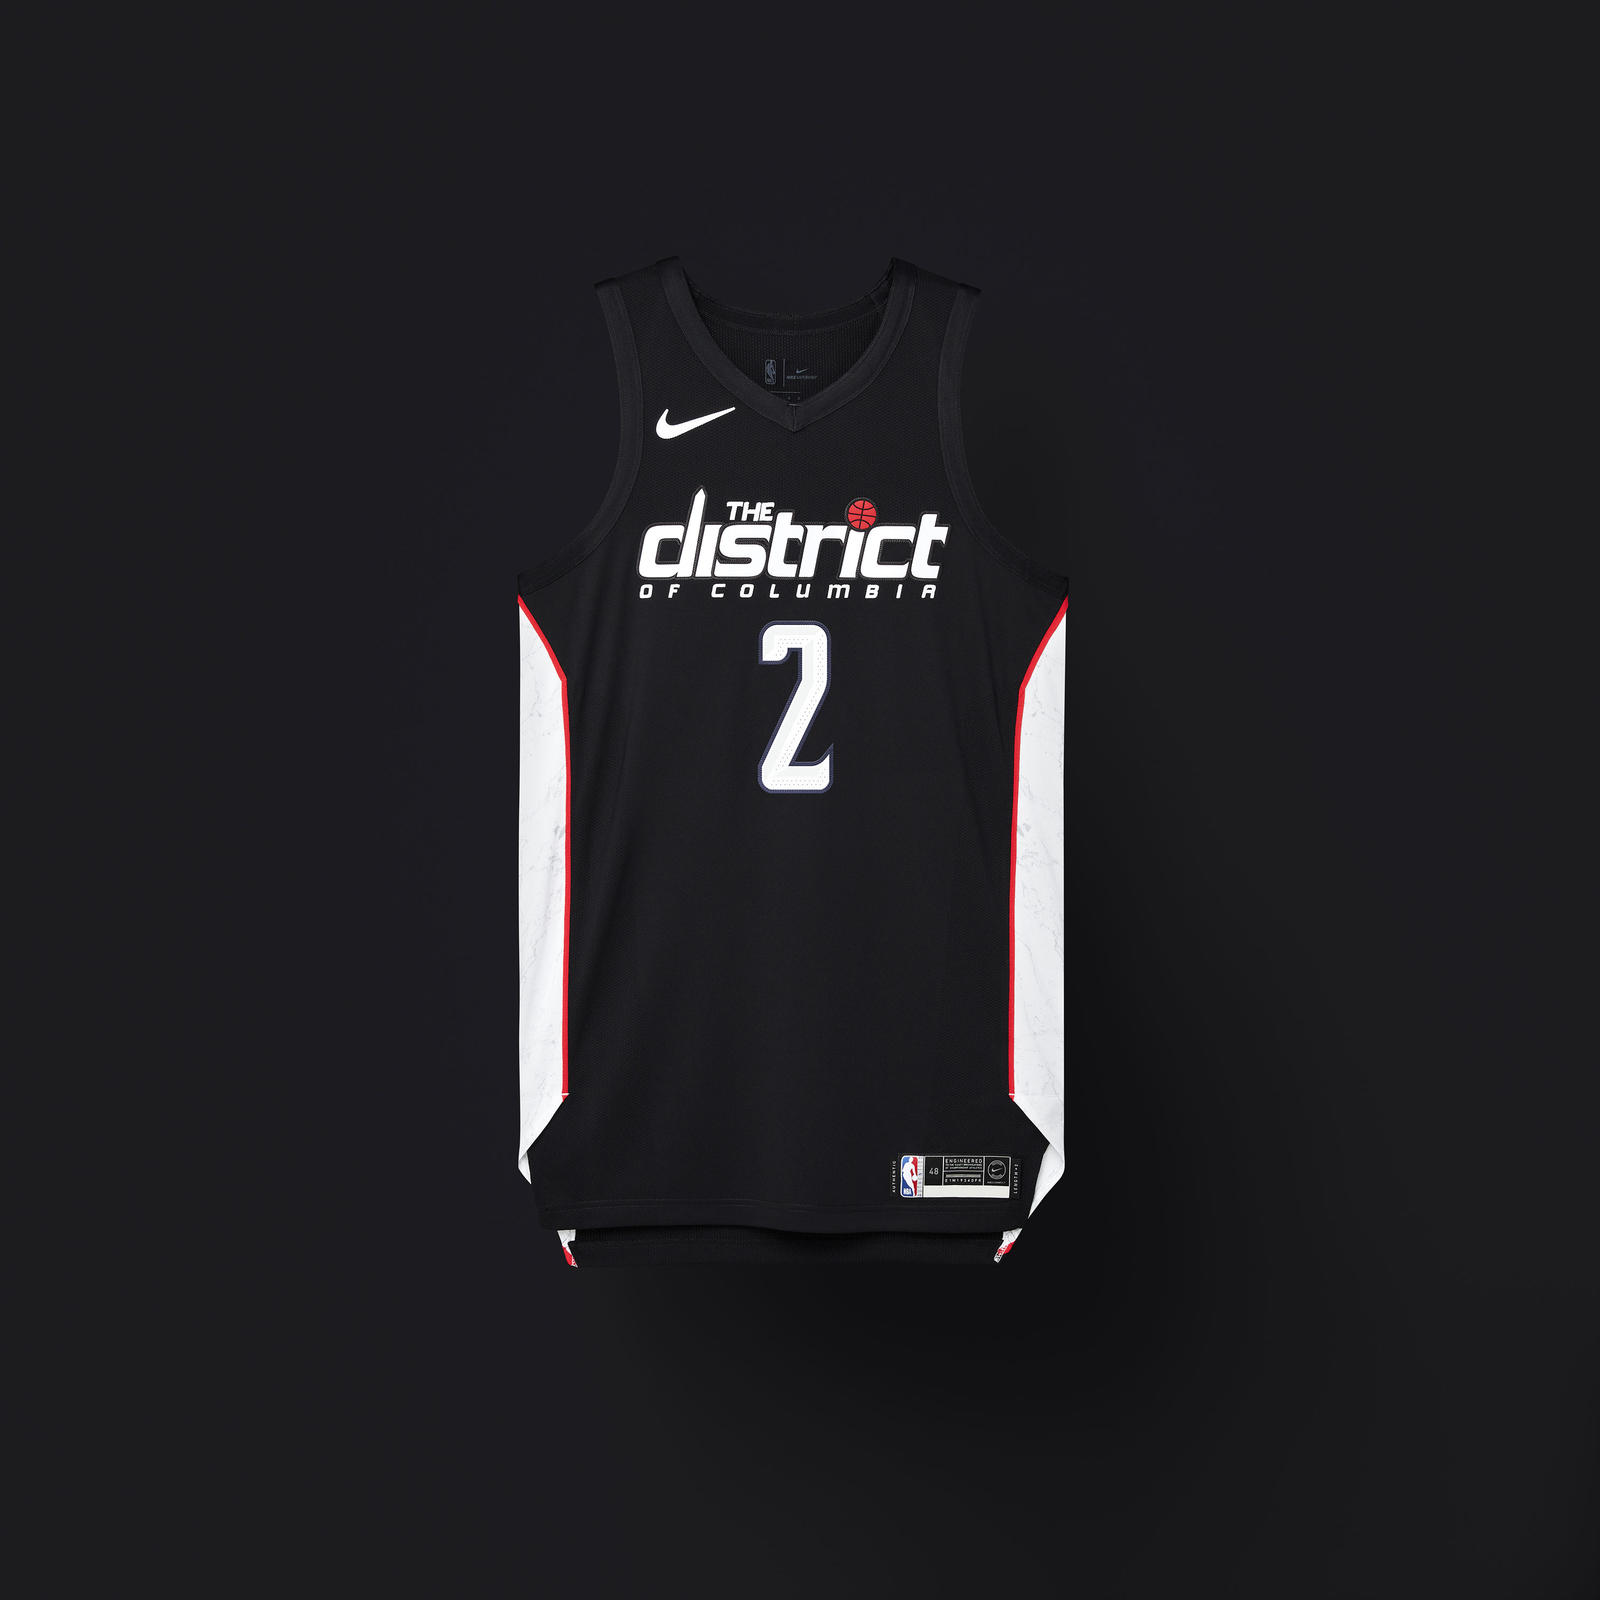 Ho18 nba city edition washingtondc jersey 0209 re square 1600